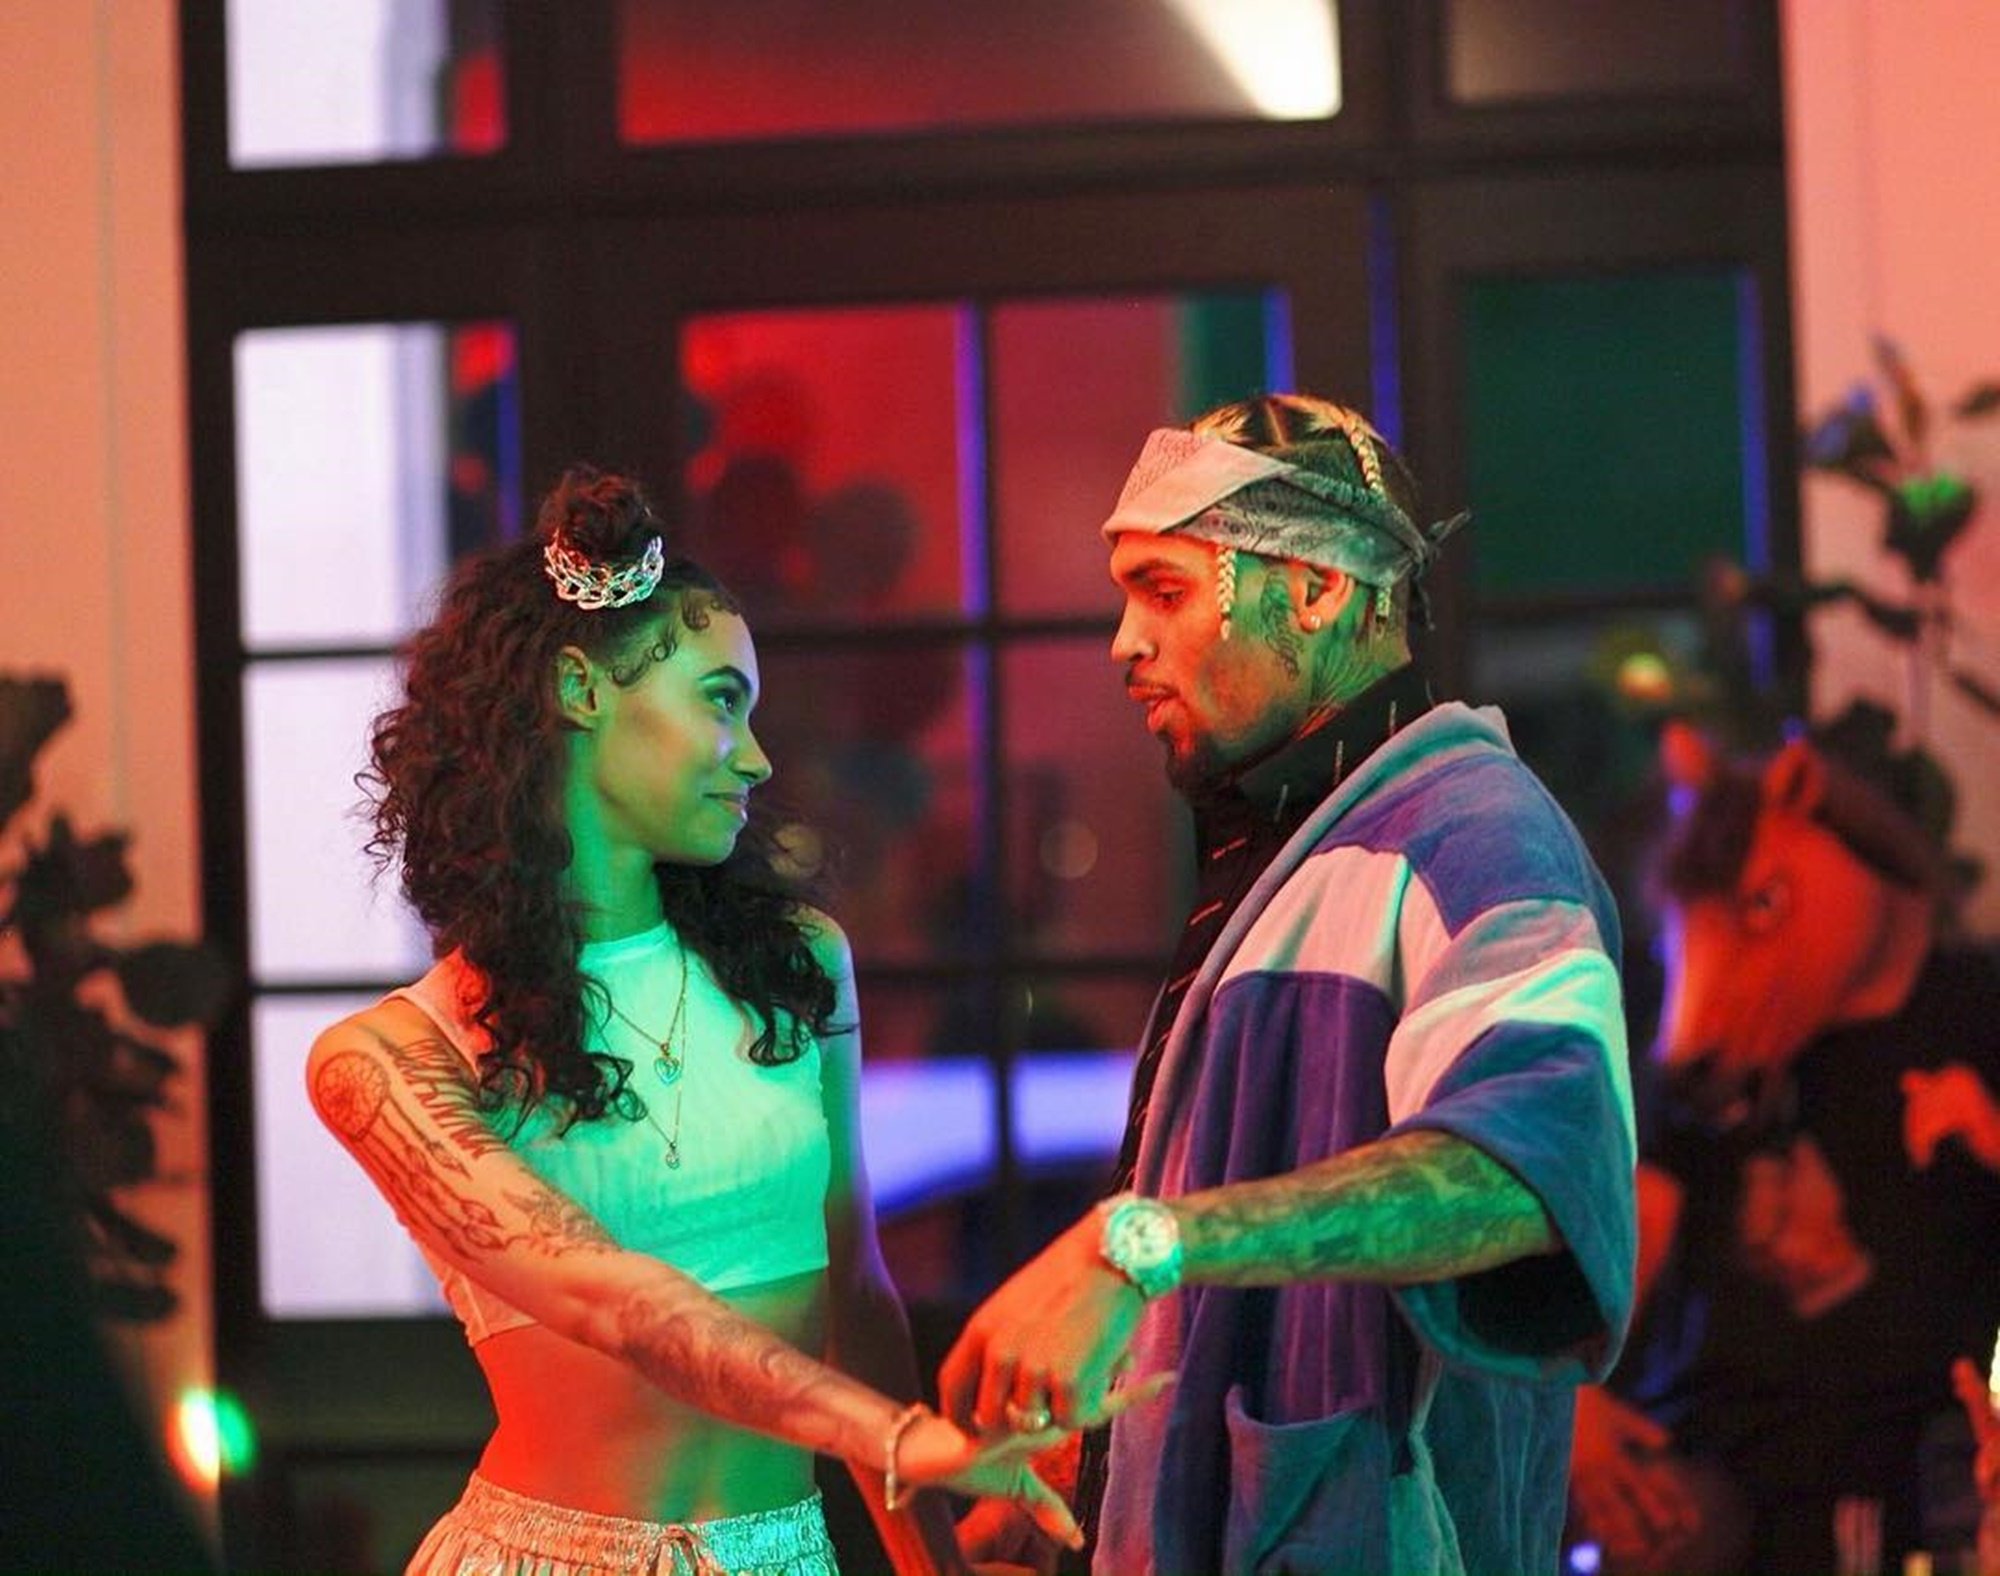 chris-brown-already-getting-over-ammika-harris-in-new-relationship-with-indyamarie-here-is-why-some-are-reluctant-to-celebrate